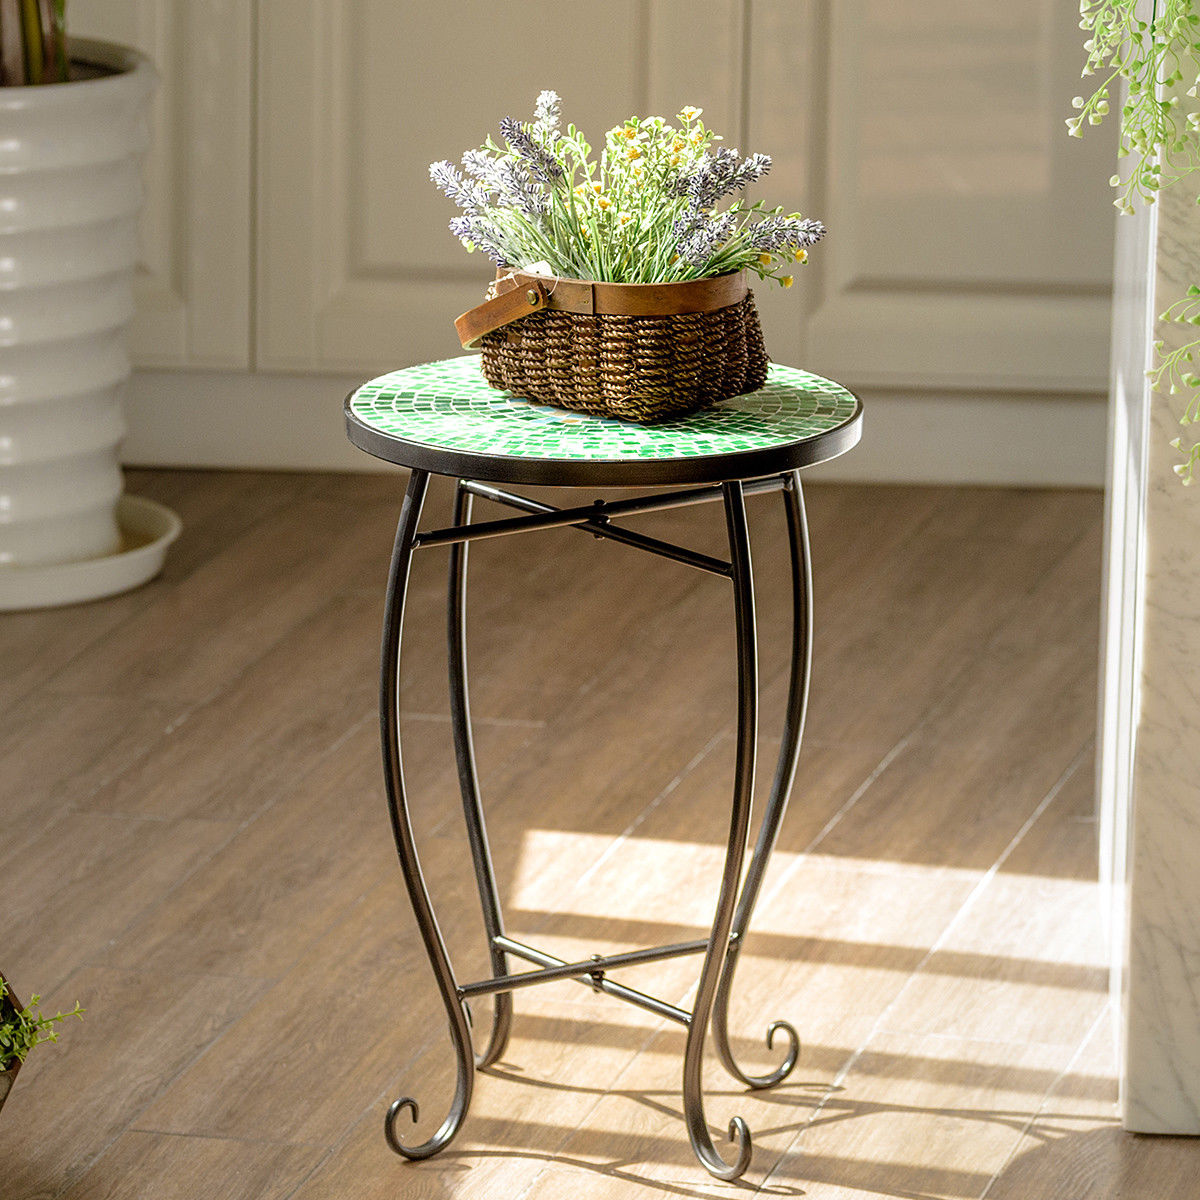 way outdoor indoor accent table plant stand scheme solar metal garden steel green chrome wooden legs wicker furniture bunnings unique home accessories brown leather ott nautical